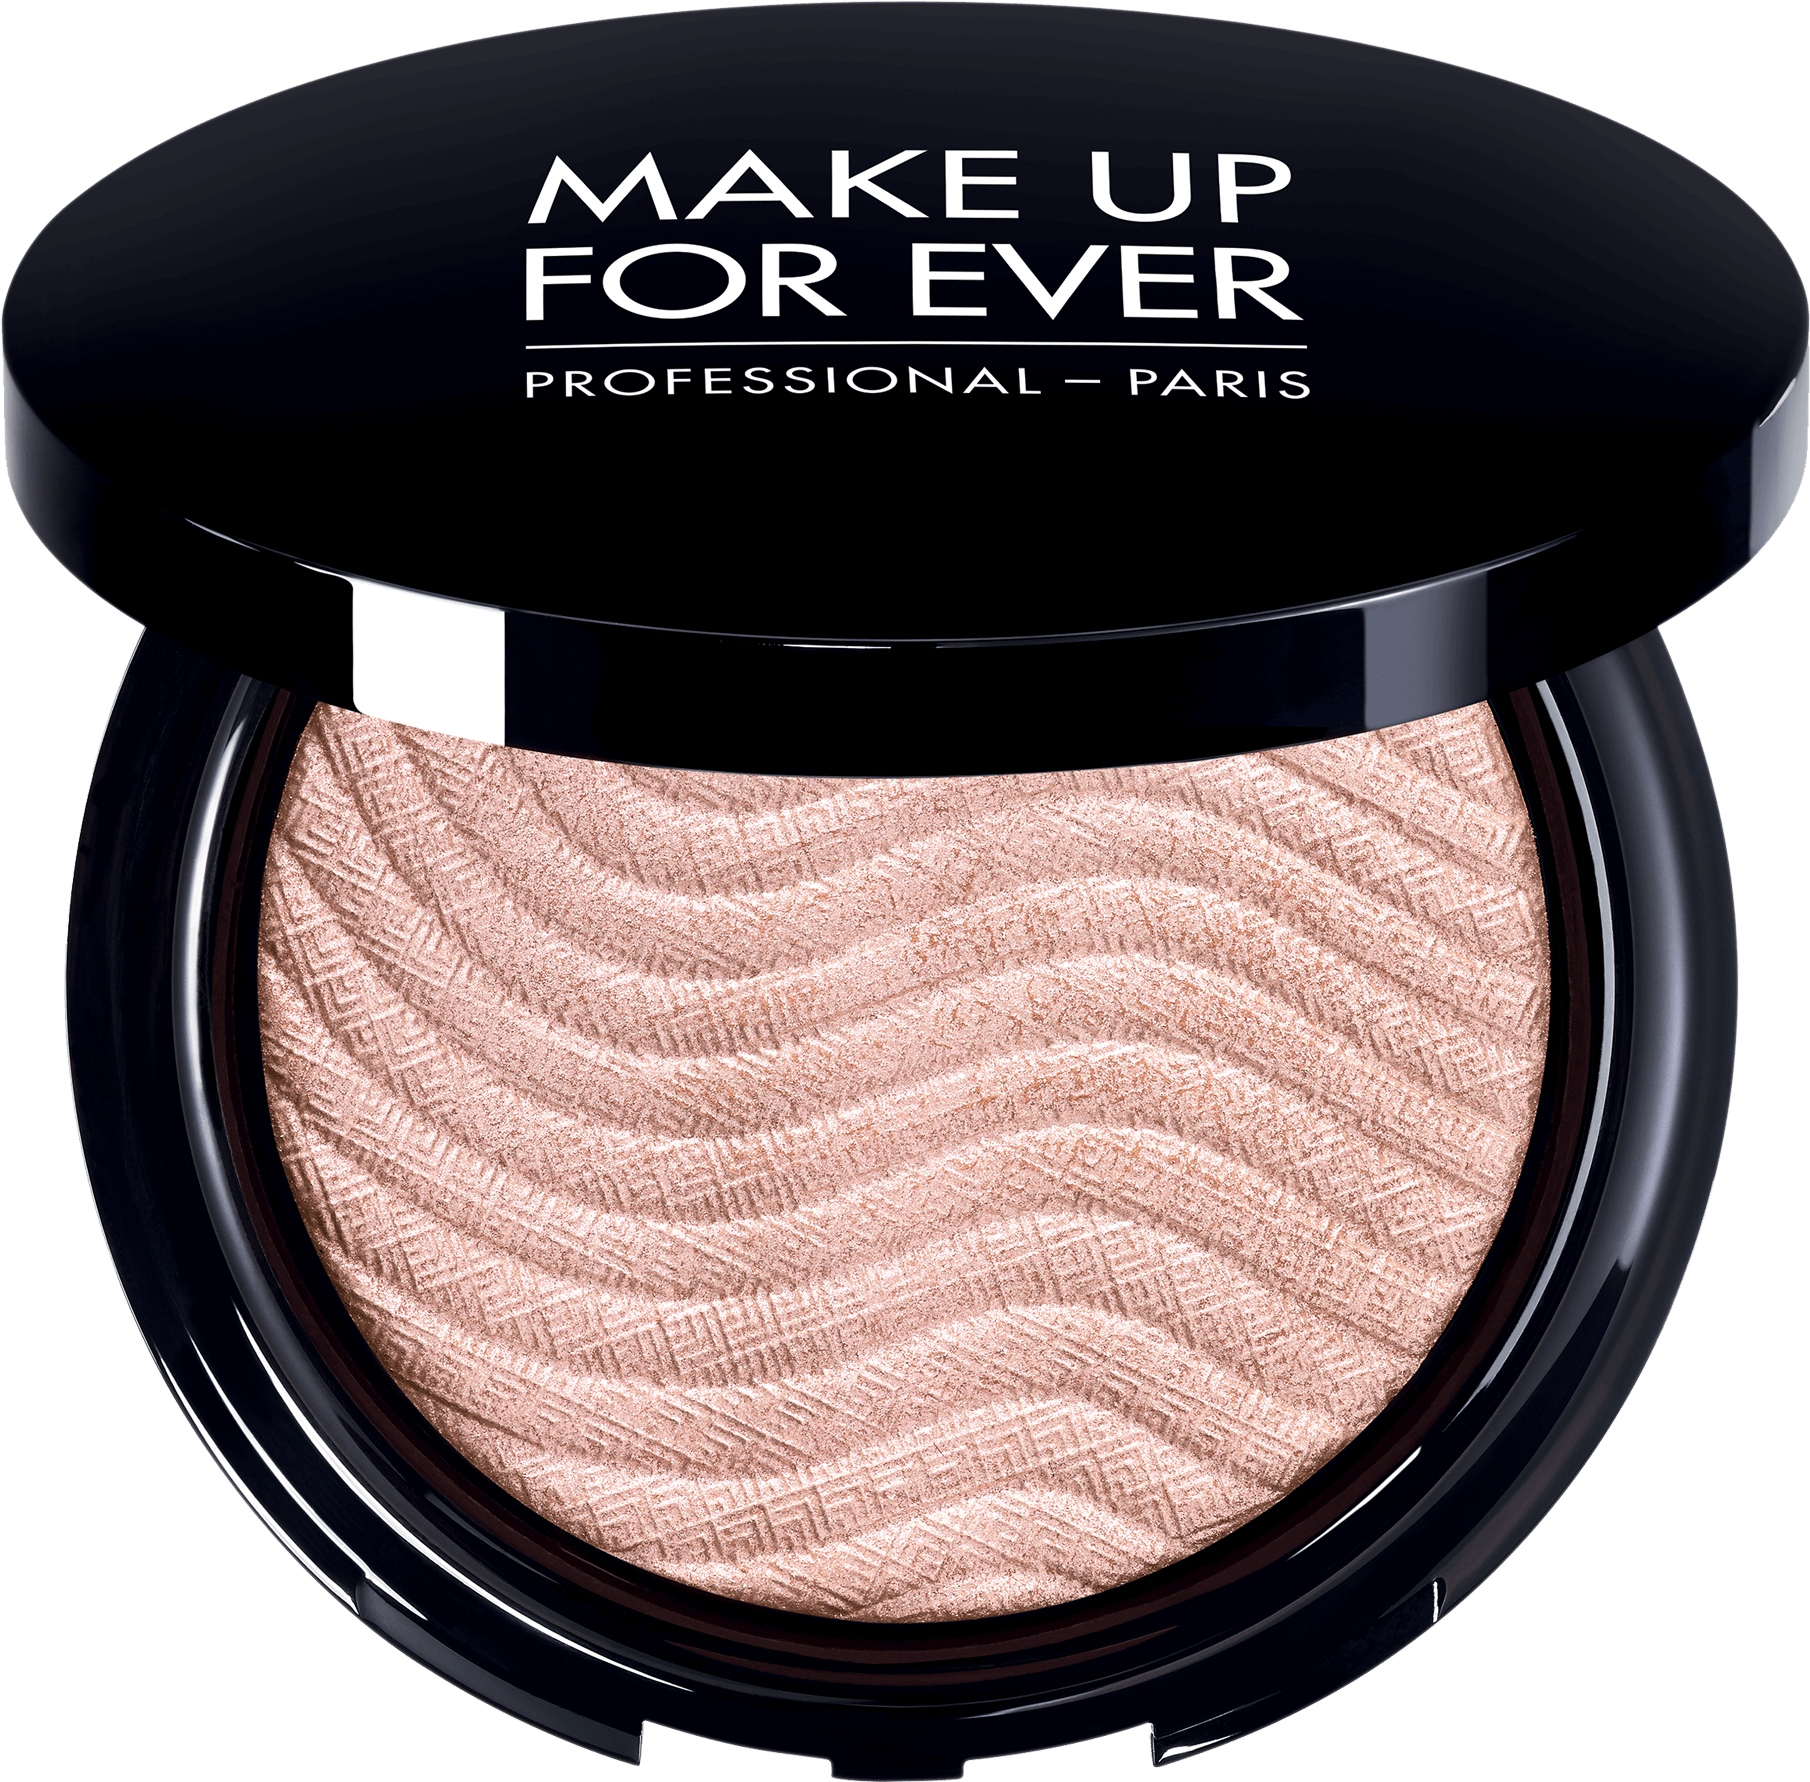 Make Up For Ever Pro Light Fusion #1 (2048x2048), Png Download